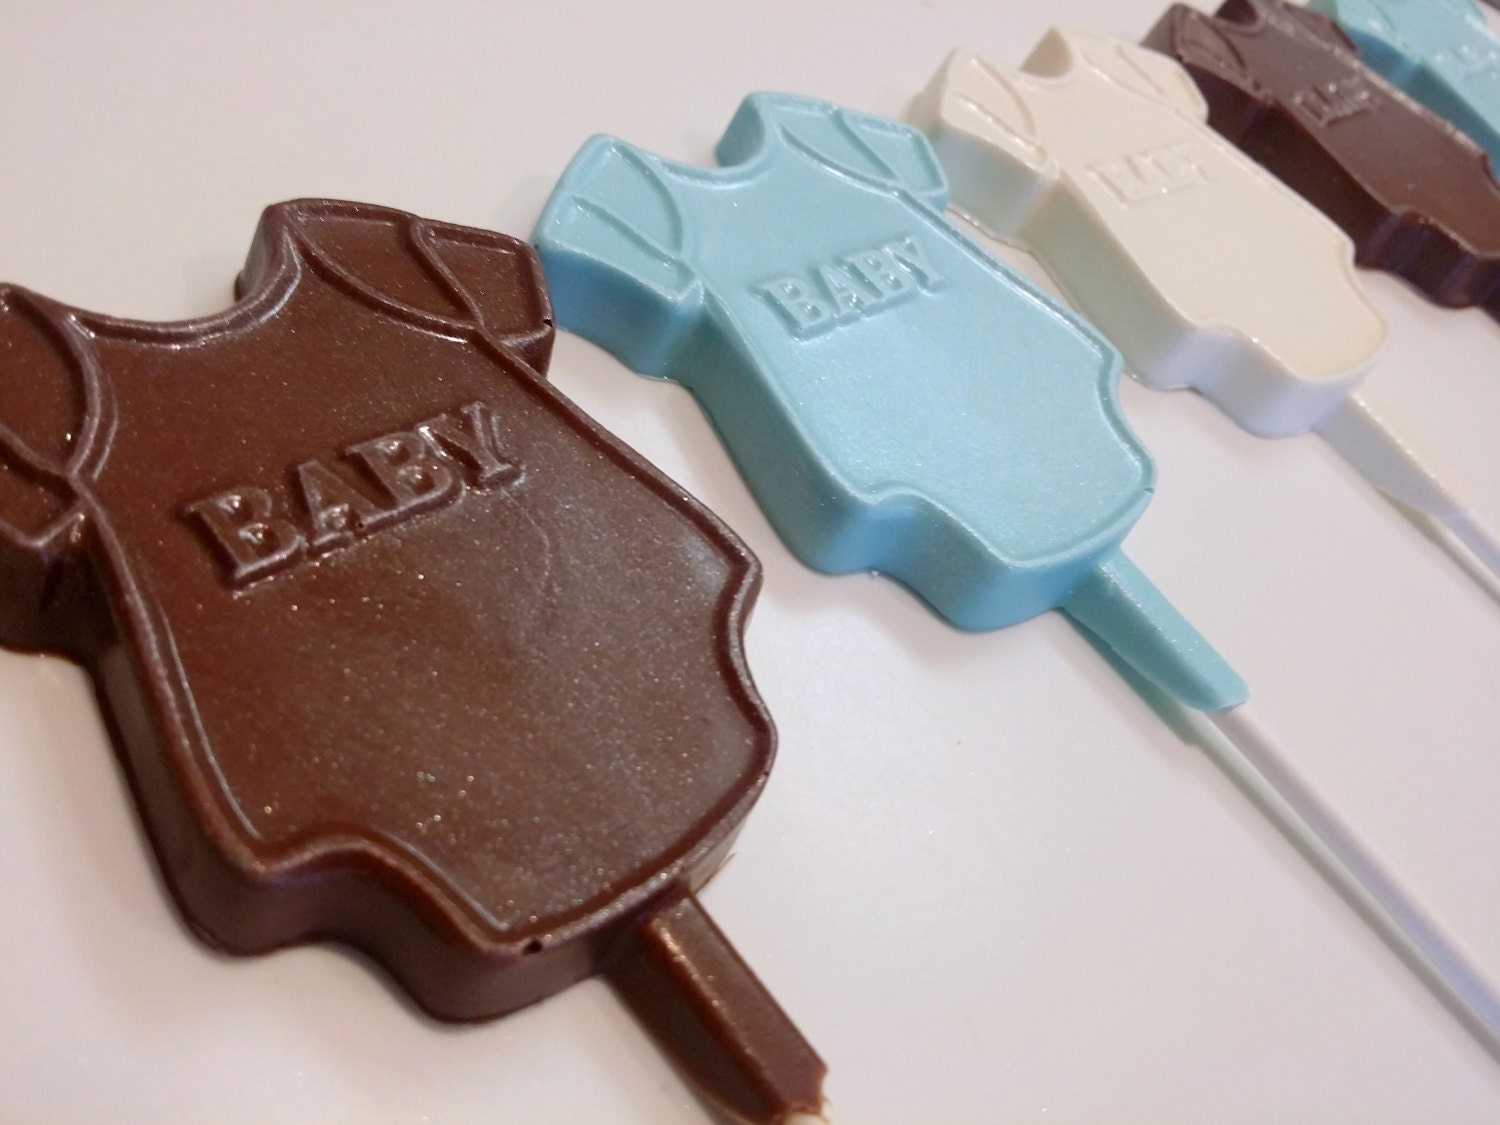 Baby Onesie Chocolate Lollipops. Chocolate Baby Lollipops. Baby Shower  Oreos. Baby Gender Reveal. Baby Shower Treats. Baby Party Decor. Baby